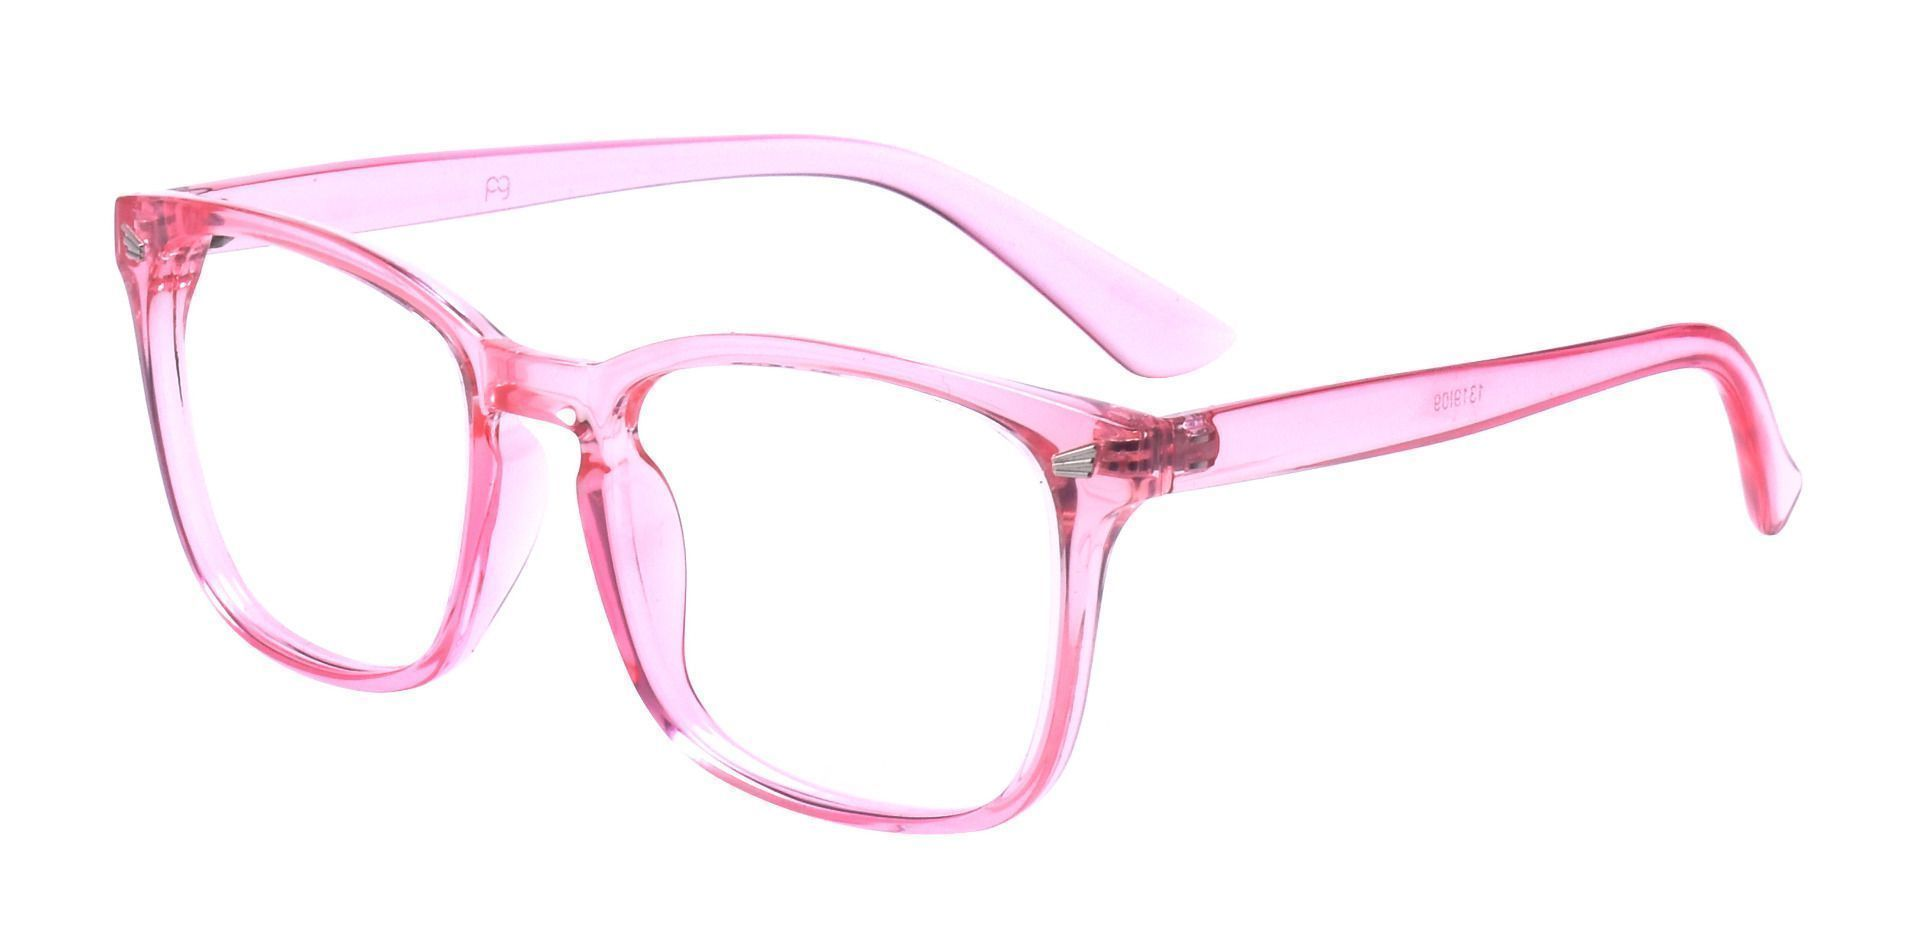 Rogan Square Prescription Glasses - Pink